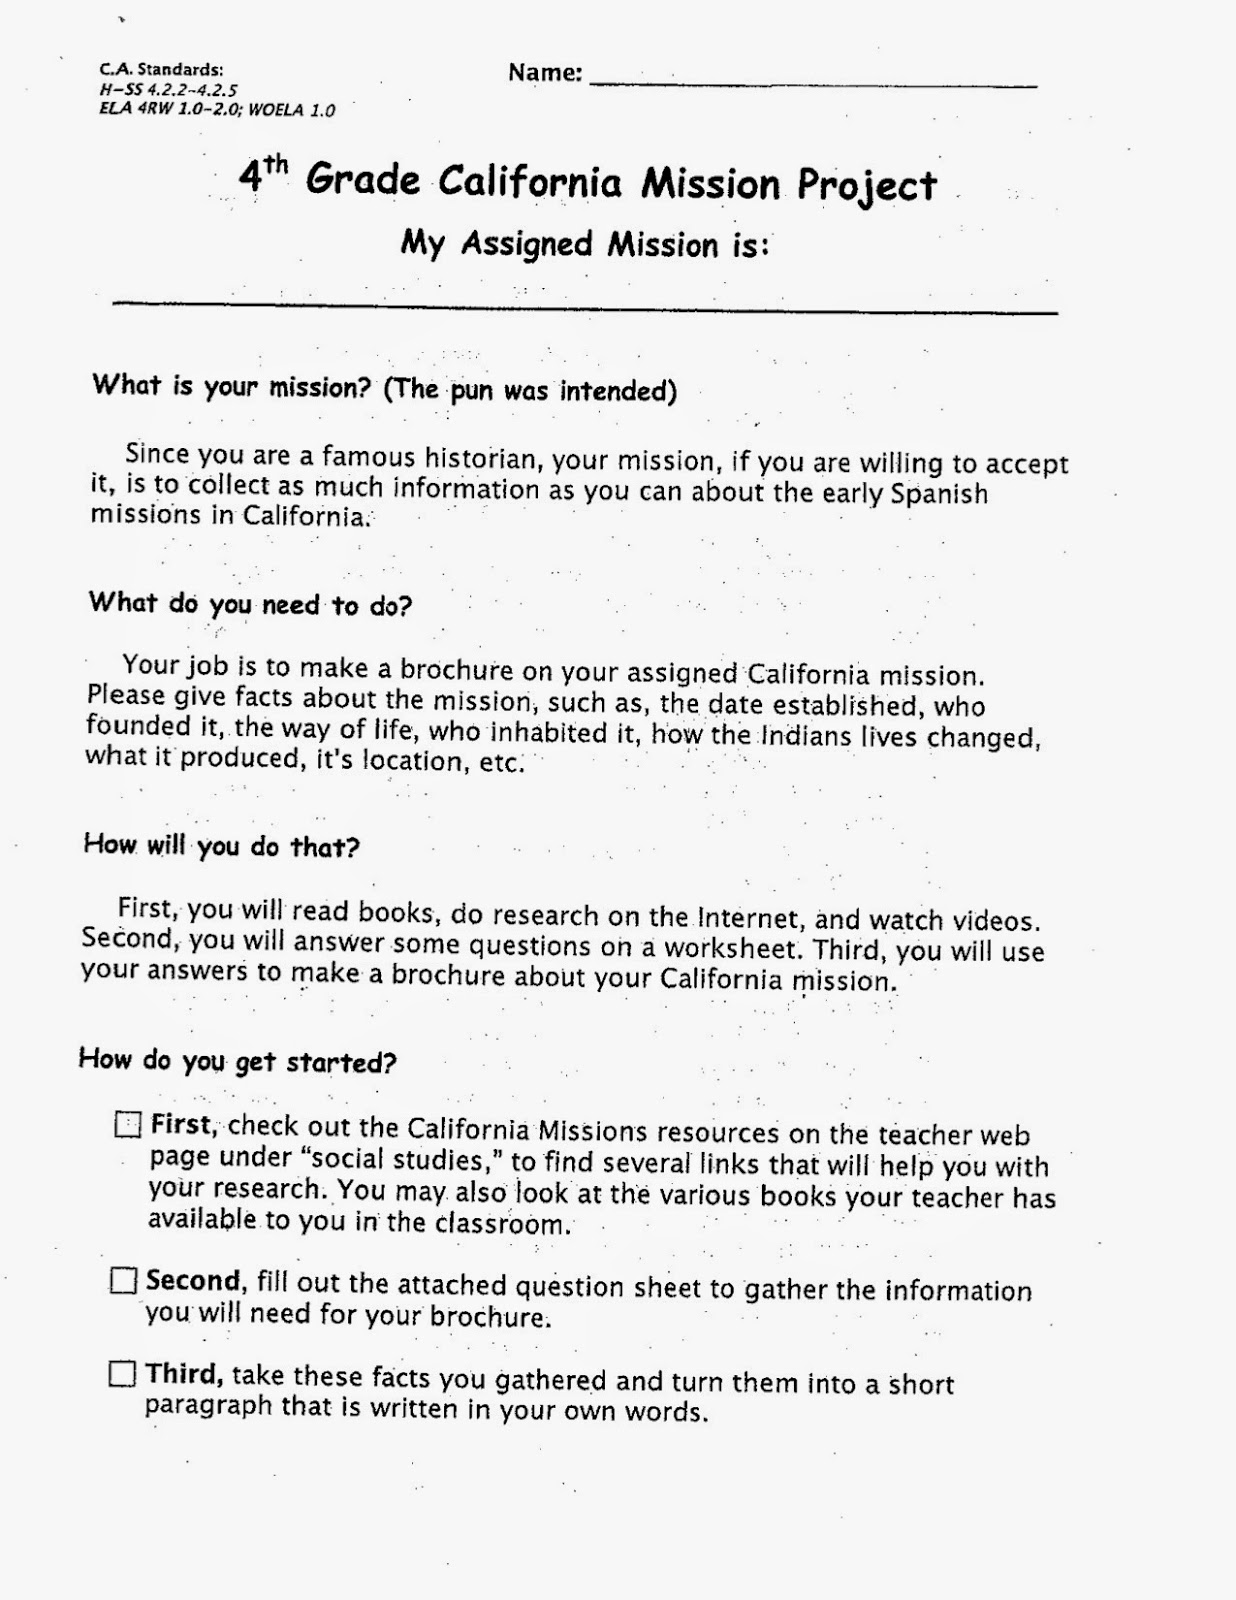 hight resolution of California Missions Worksheets For Kids   Printable Worksheets and  Activities for Teachers